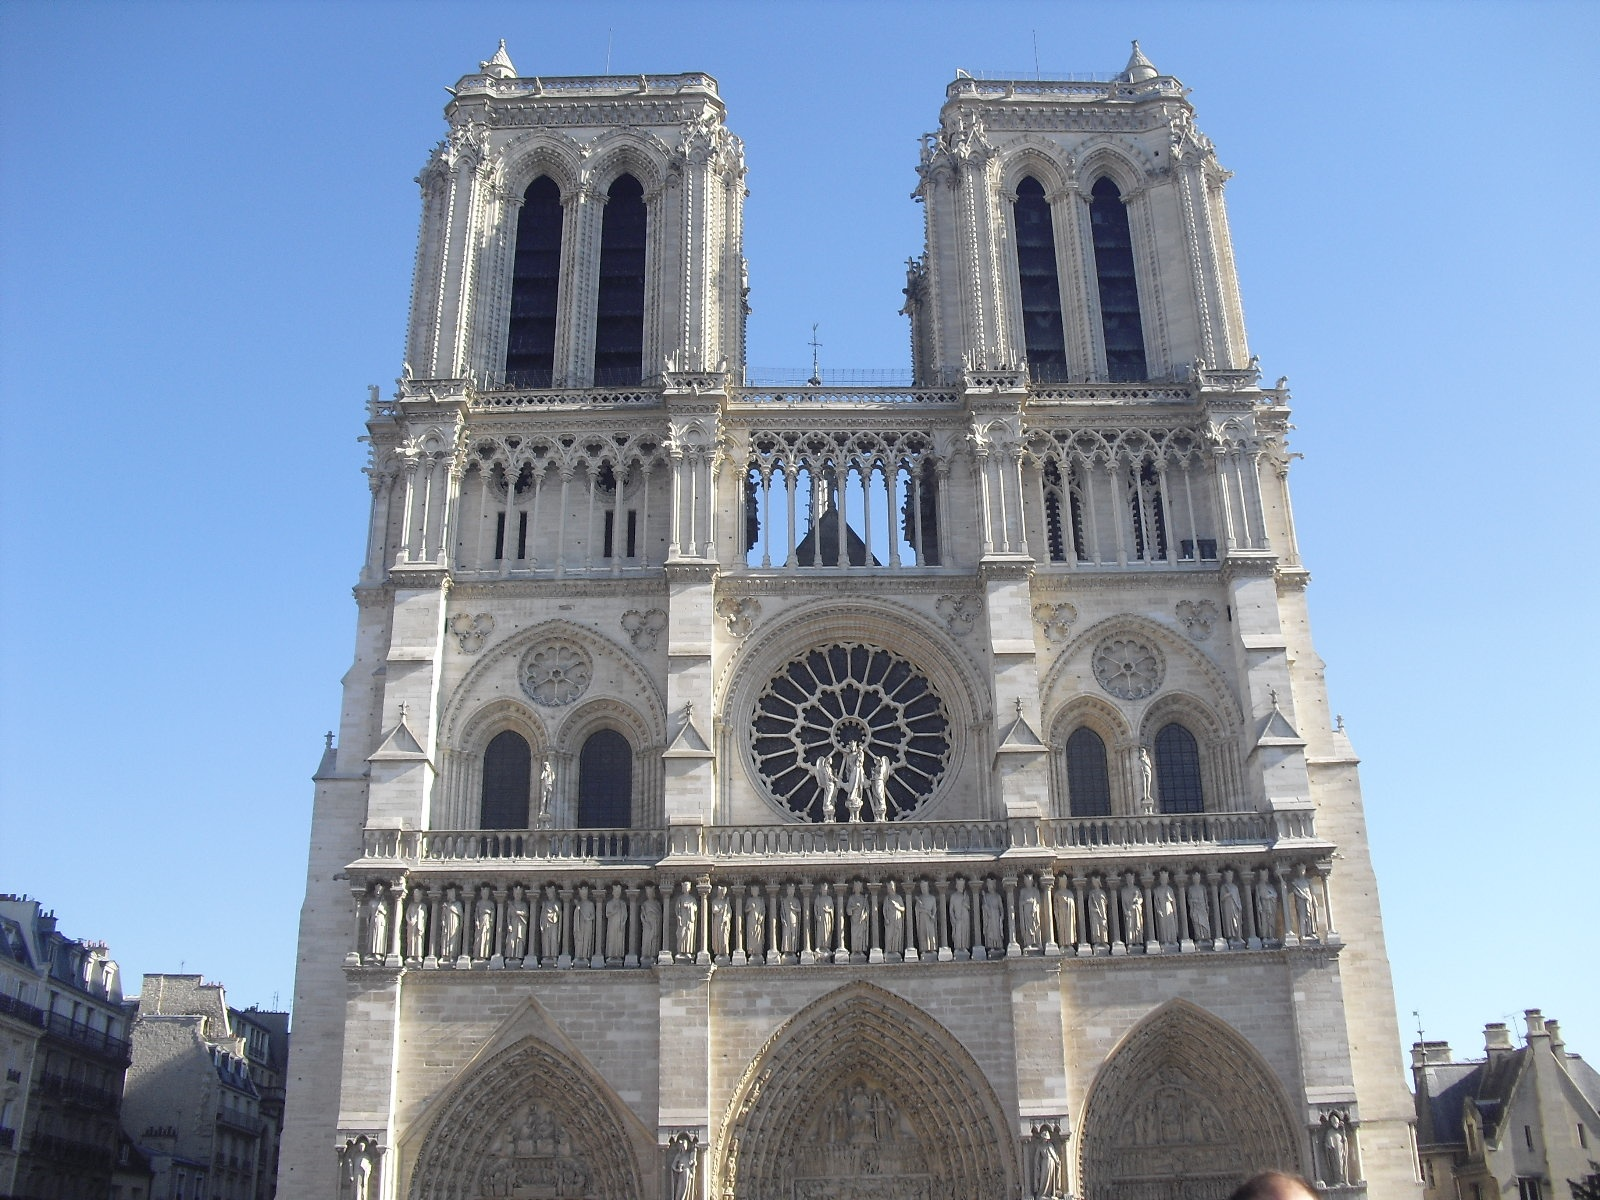 Does Michigan have a rival in Paris?